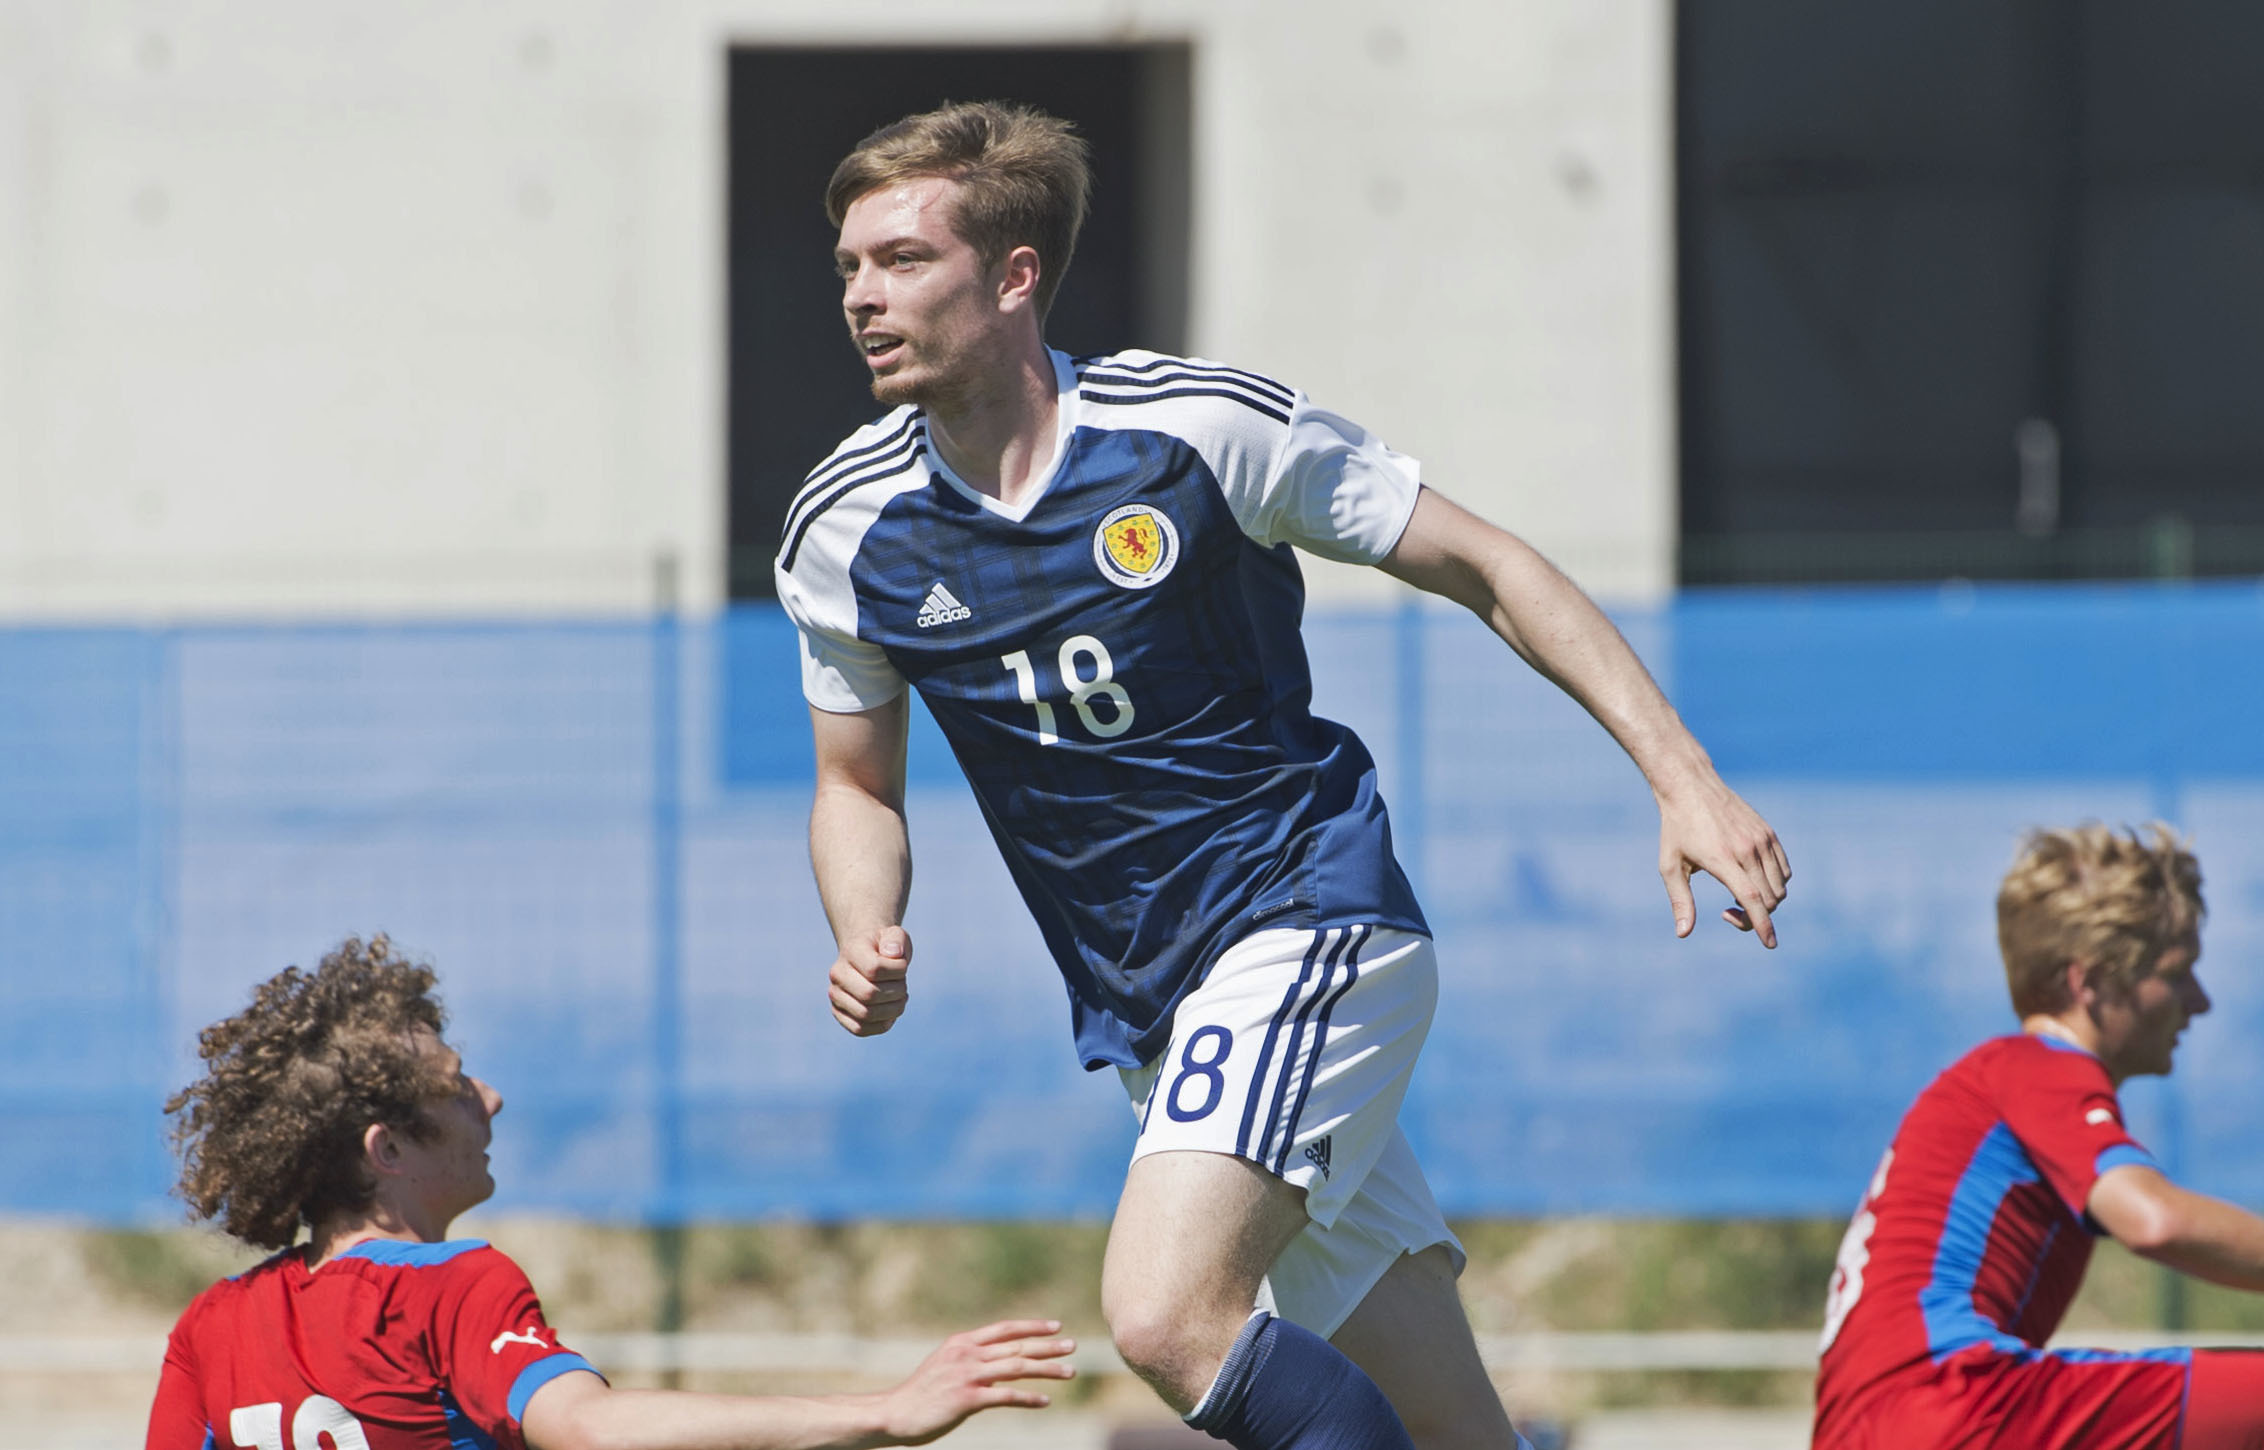 Craig Wighton celebrates after scoring for Scotland against Czech Republic in the Toulon Tournament.